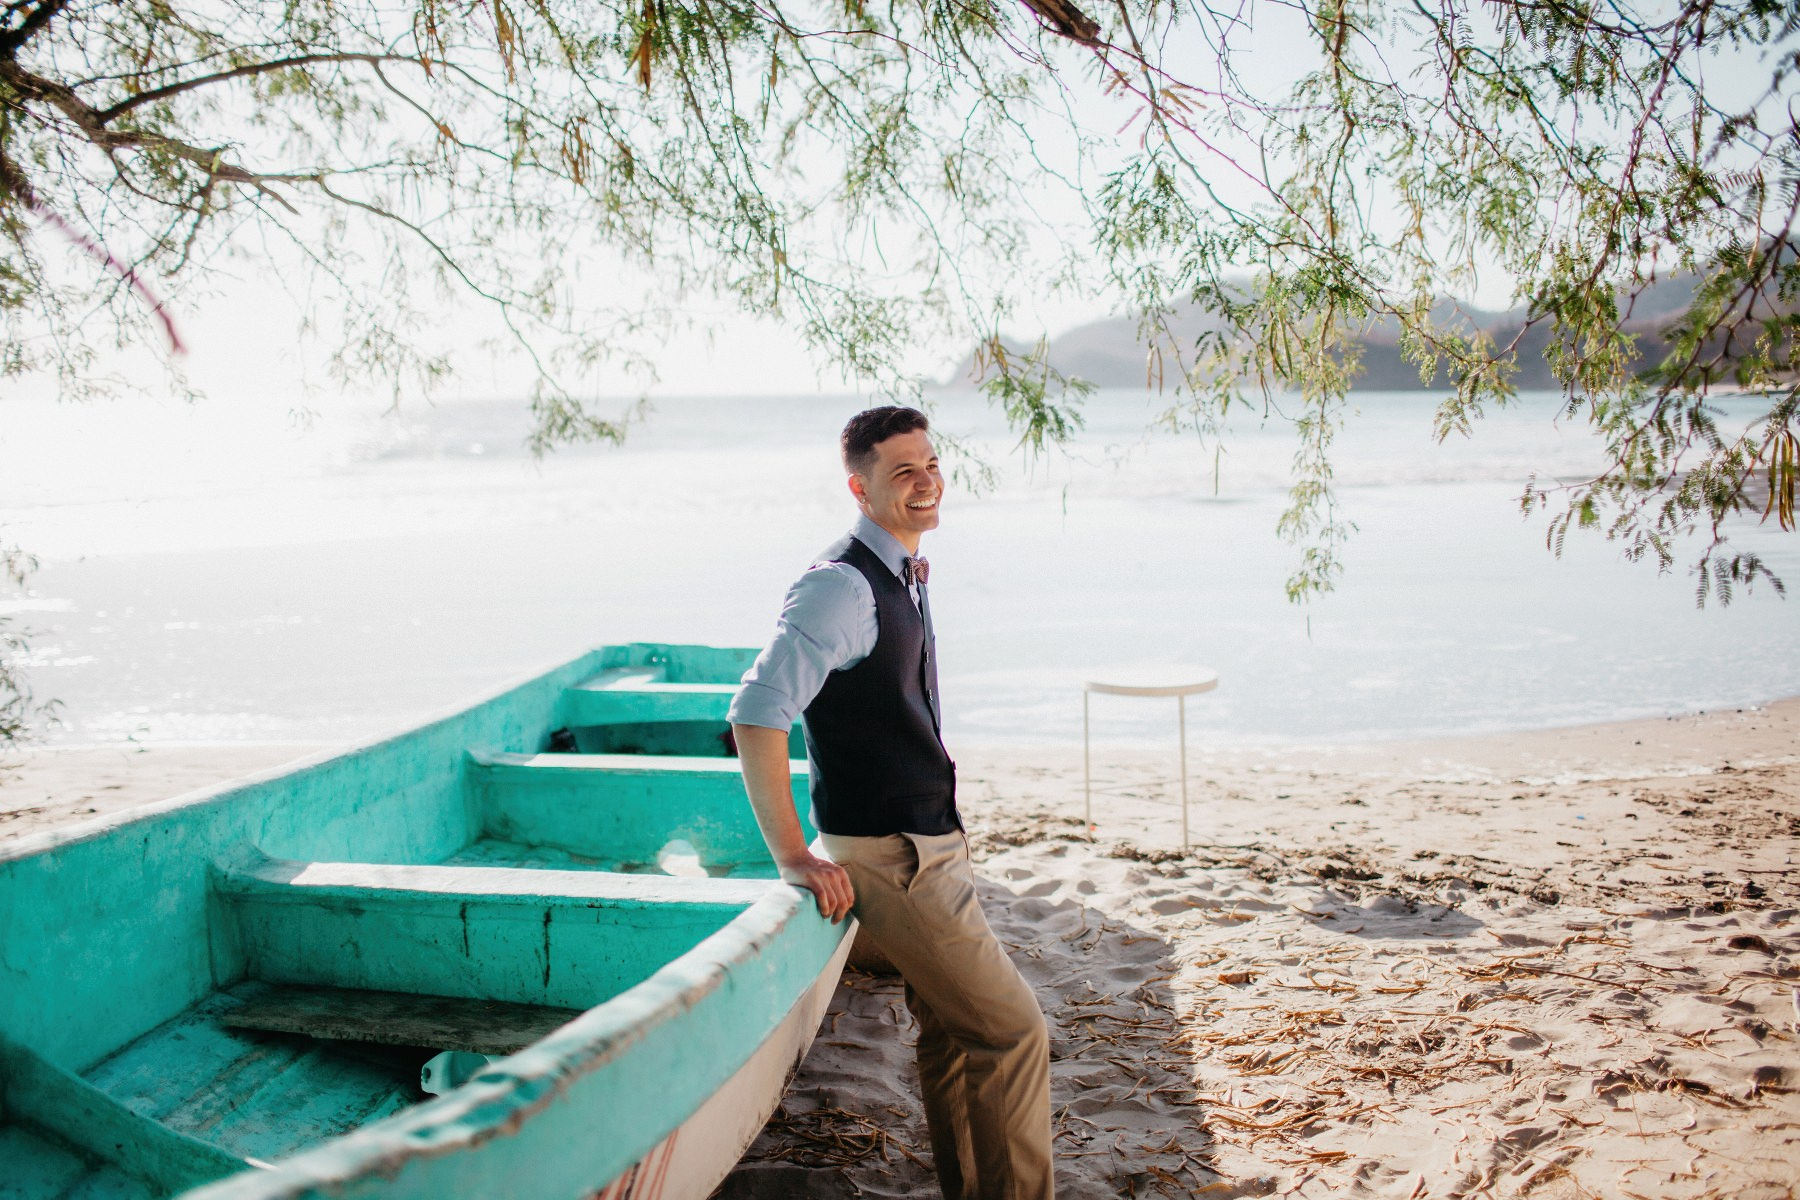 The groom waiting for the bride during a beach wedding in Costa Rica